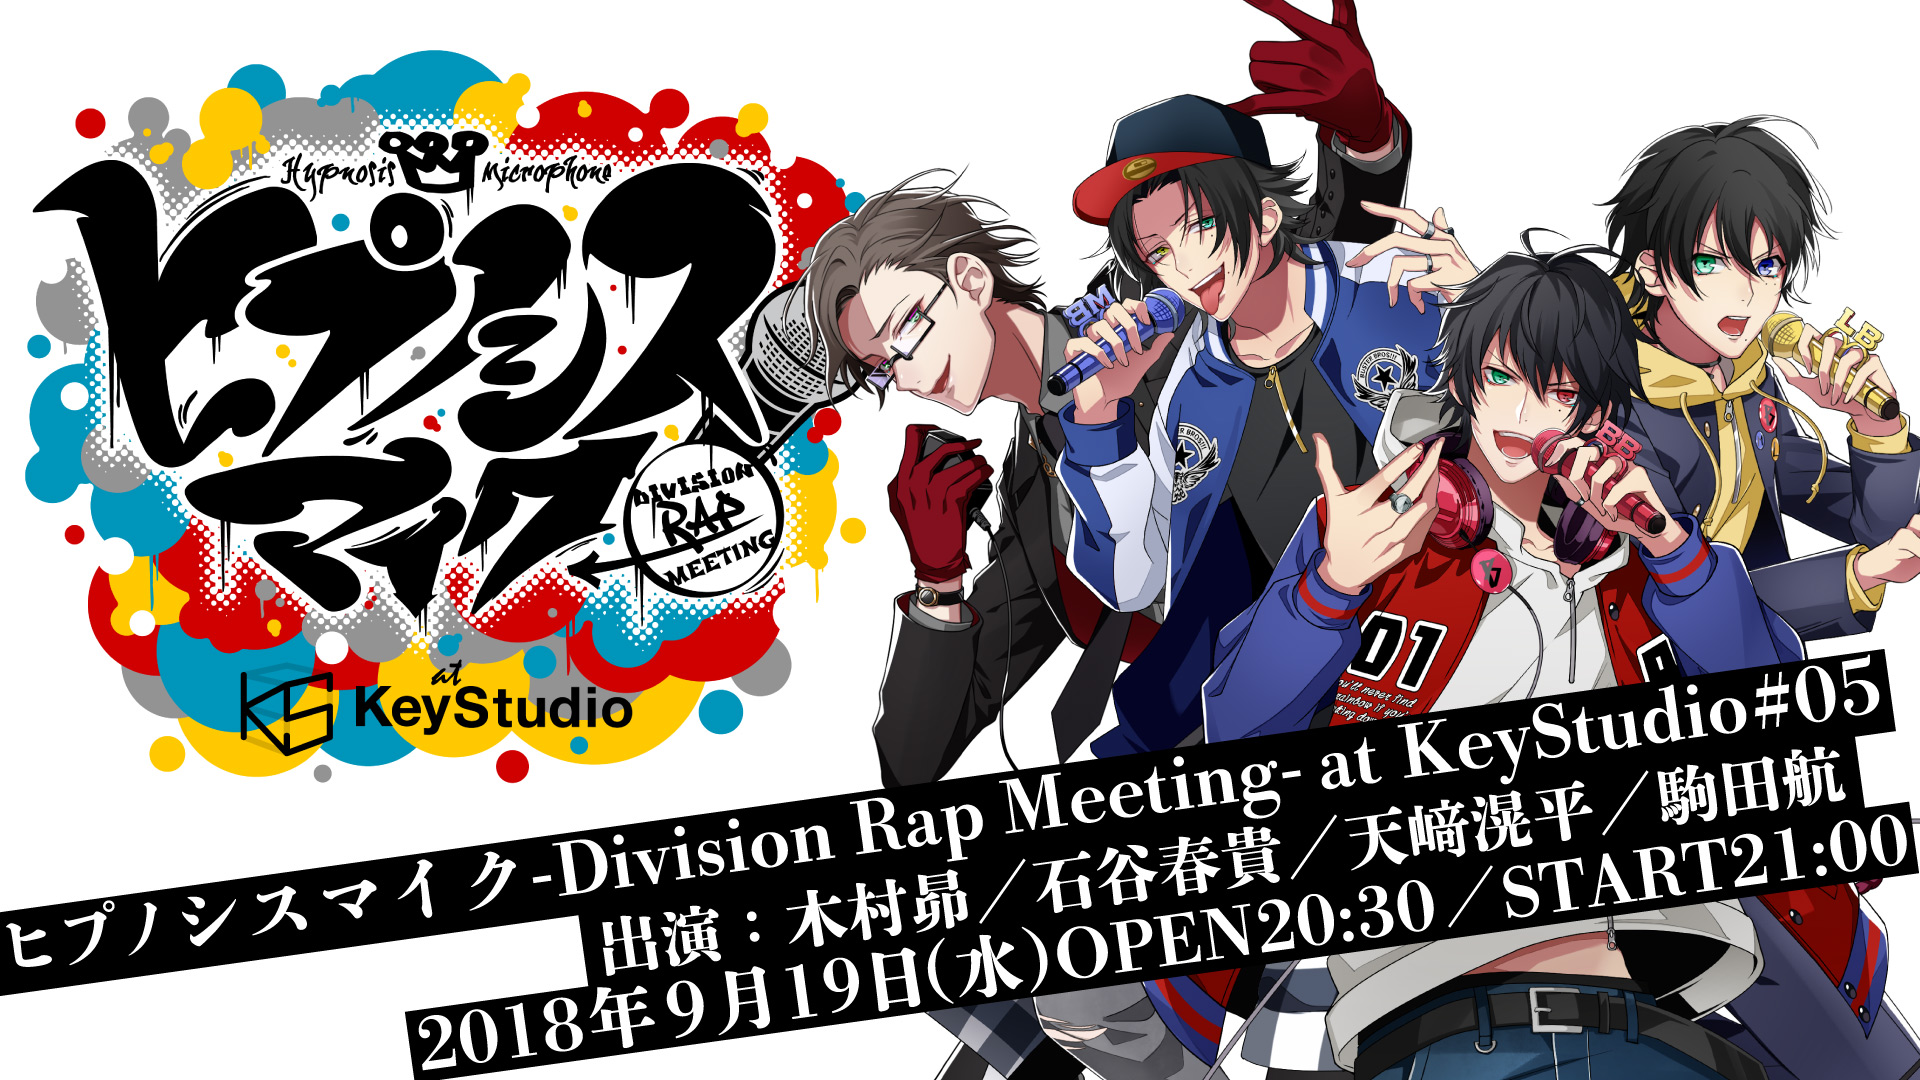 ヒプノシスマイク -Division Rap Meeting- at KeyStudio #05